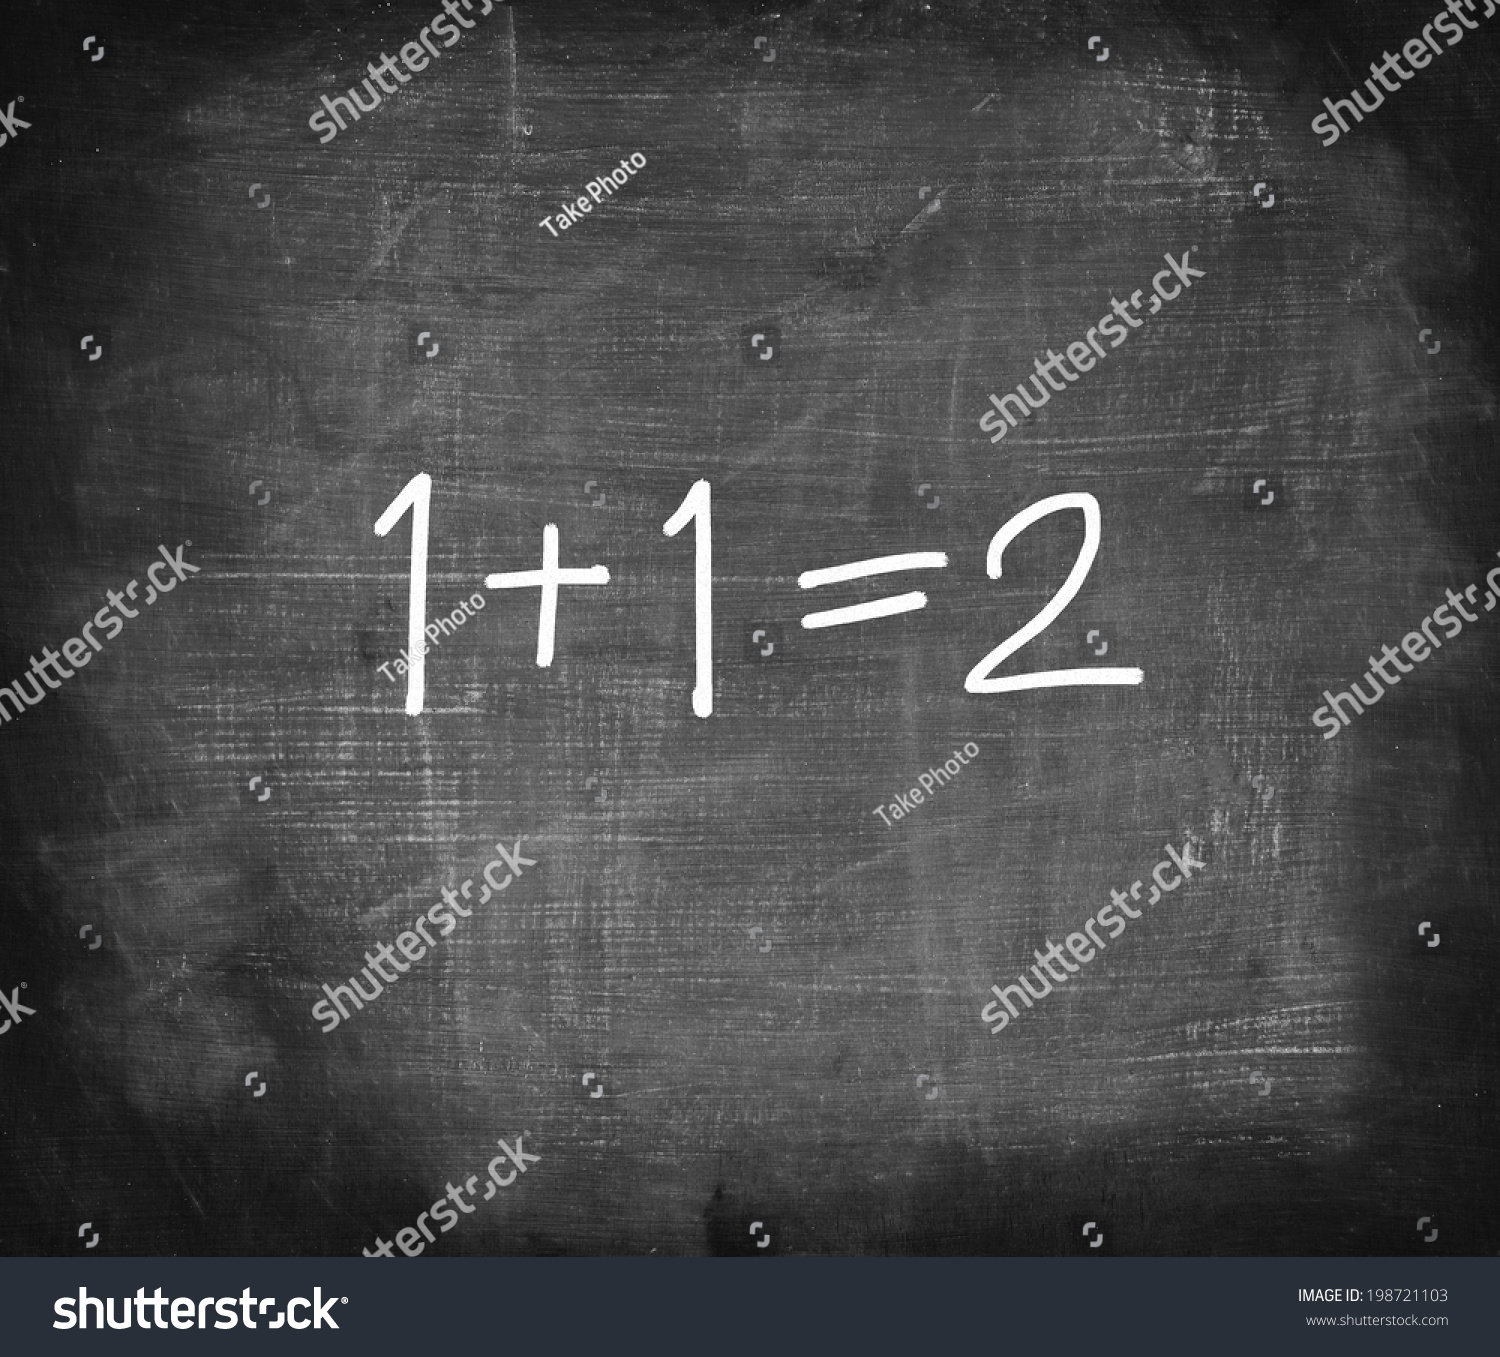 One Add One On Chalkboard Simple Stock Photo 198721103 - Shutterstock